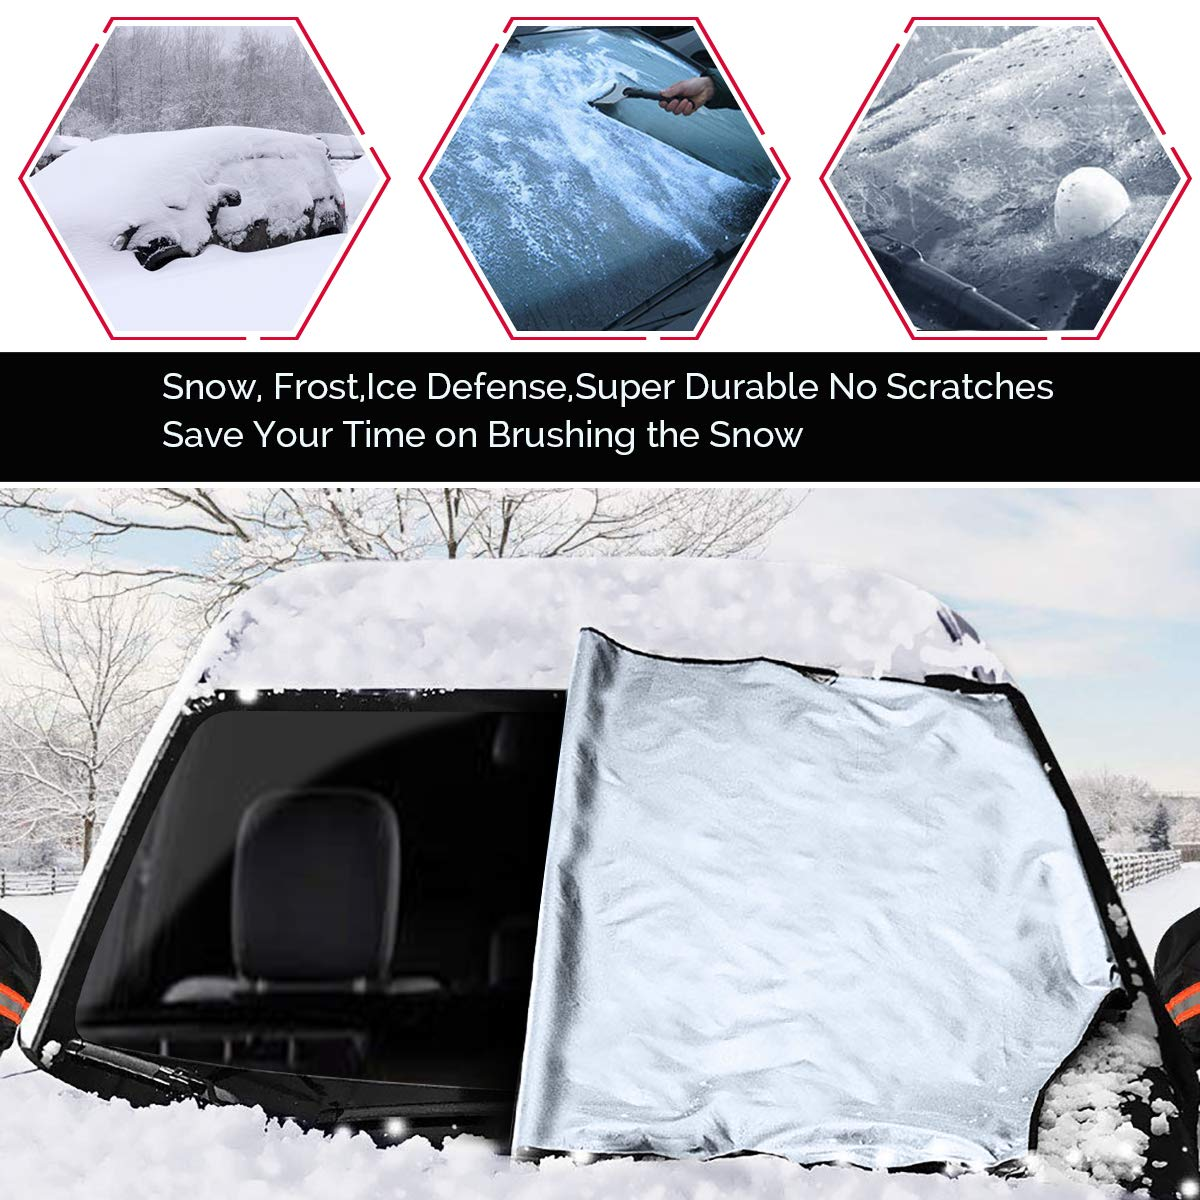 Snow Winter Windshield Cover Fits Most Cars Mikikin Windshield Snow Ice Cover Ice Frost Guard Hooks /& Built-in Magnet Design Magnetic Car Windshield Cover with Wiper Visor Protector UV Defense